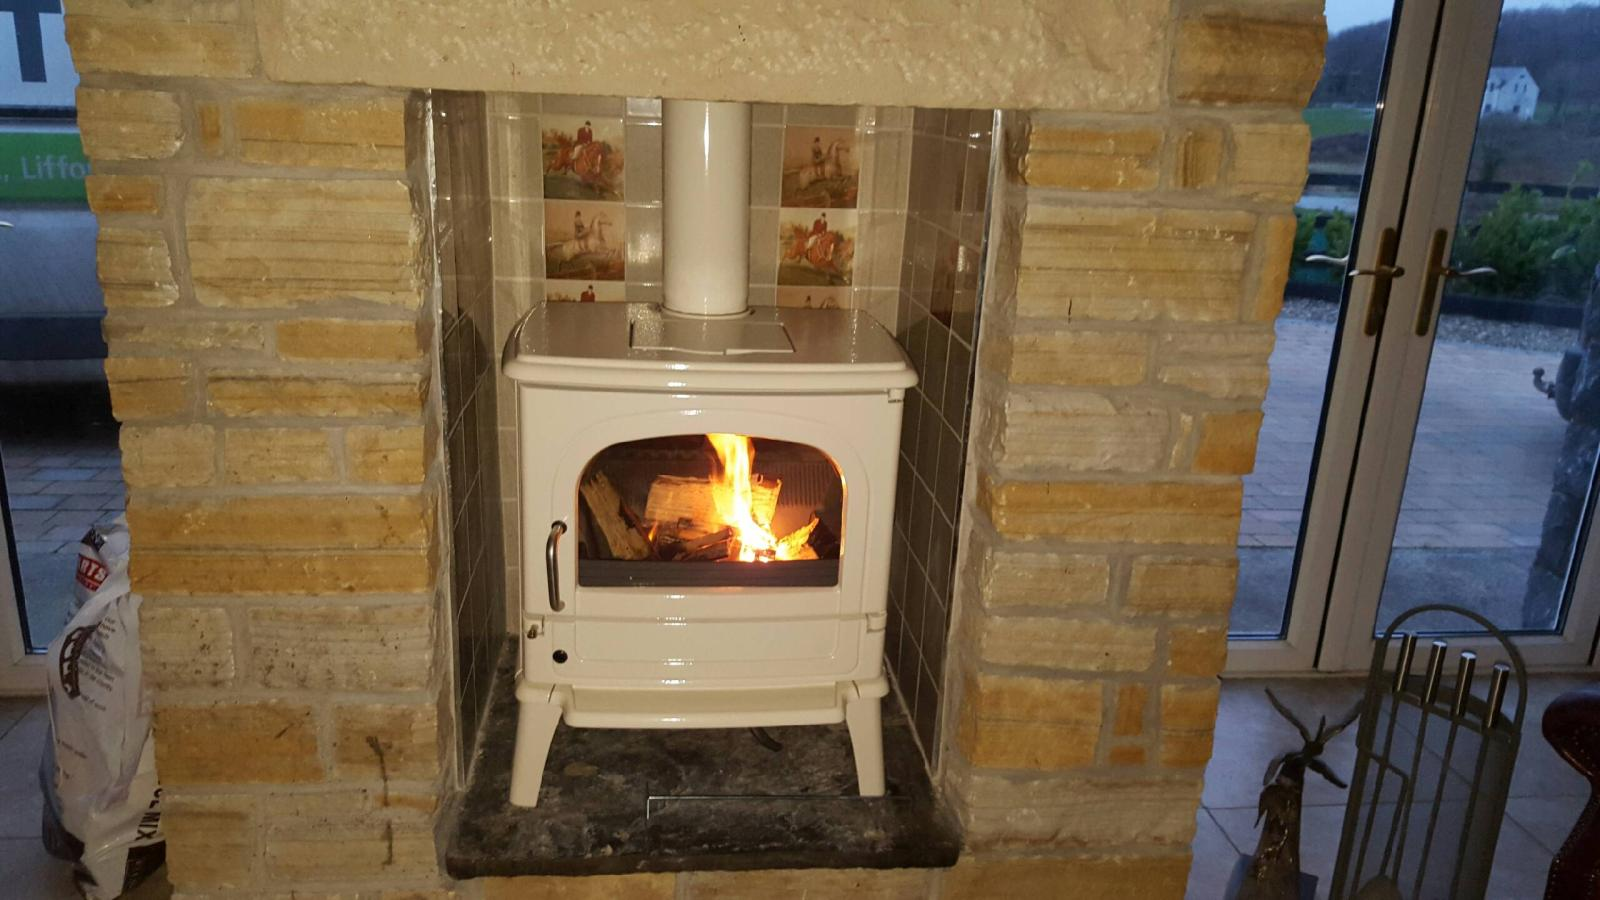 Dru 64 in Ivory Cream 11kw. A beautiful stove with a classic look.